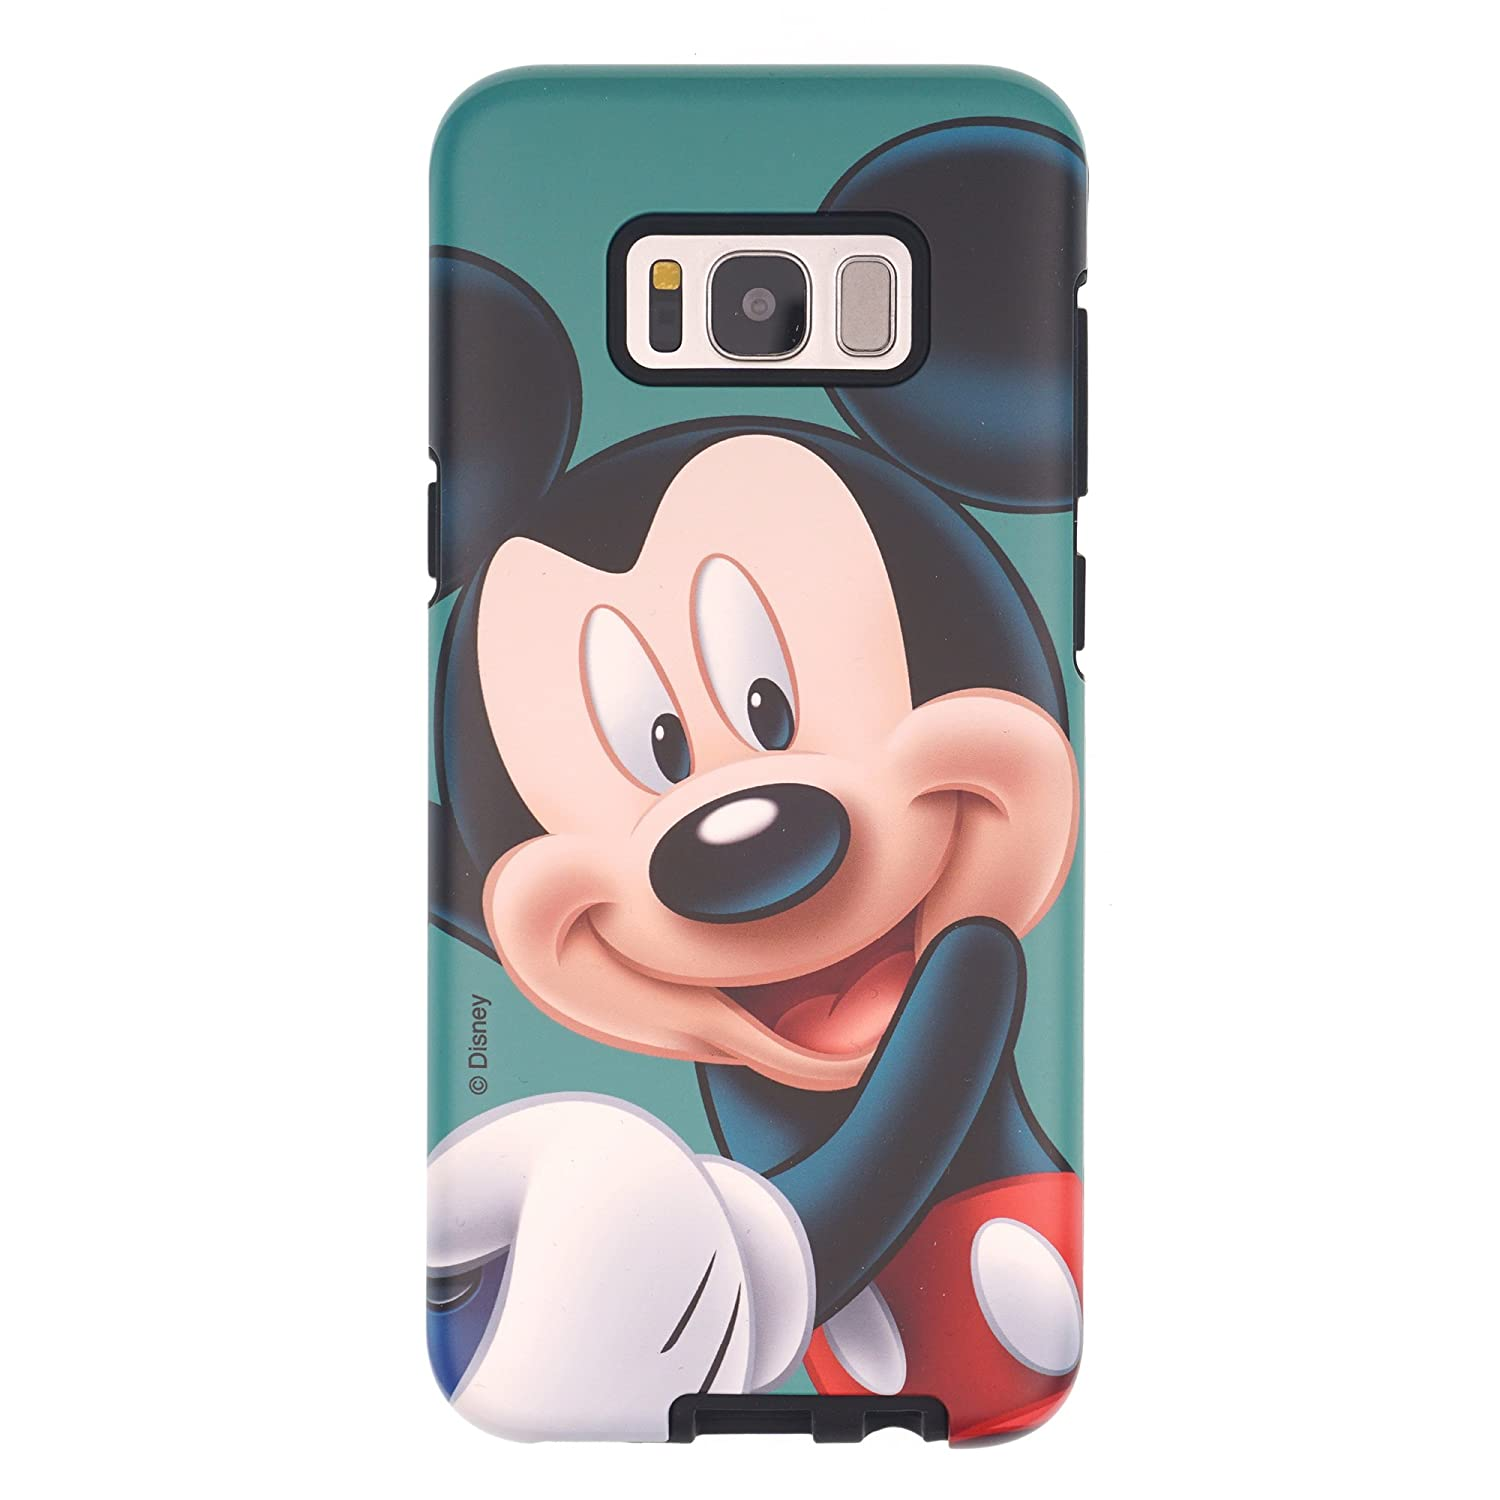 Galaxy Note5 Case, Disney Cute Mickey Mouse Layered Hybrid [TPU + PC] Bumper Cover [Shock Absorption] for Samsung Galaxy Note5 - Smile Mickey Mouse